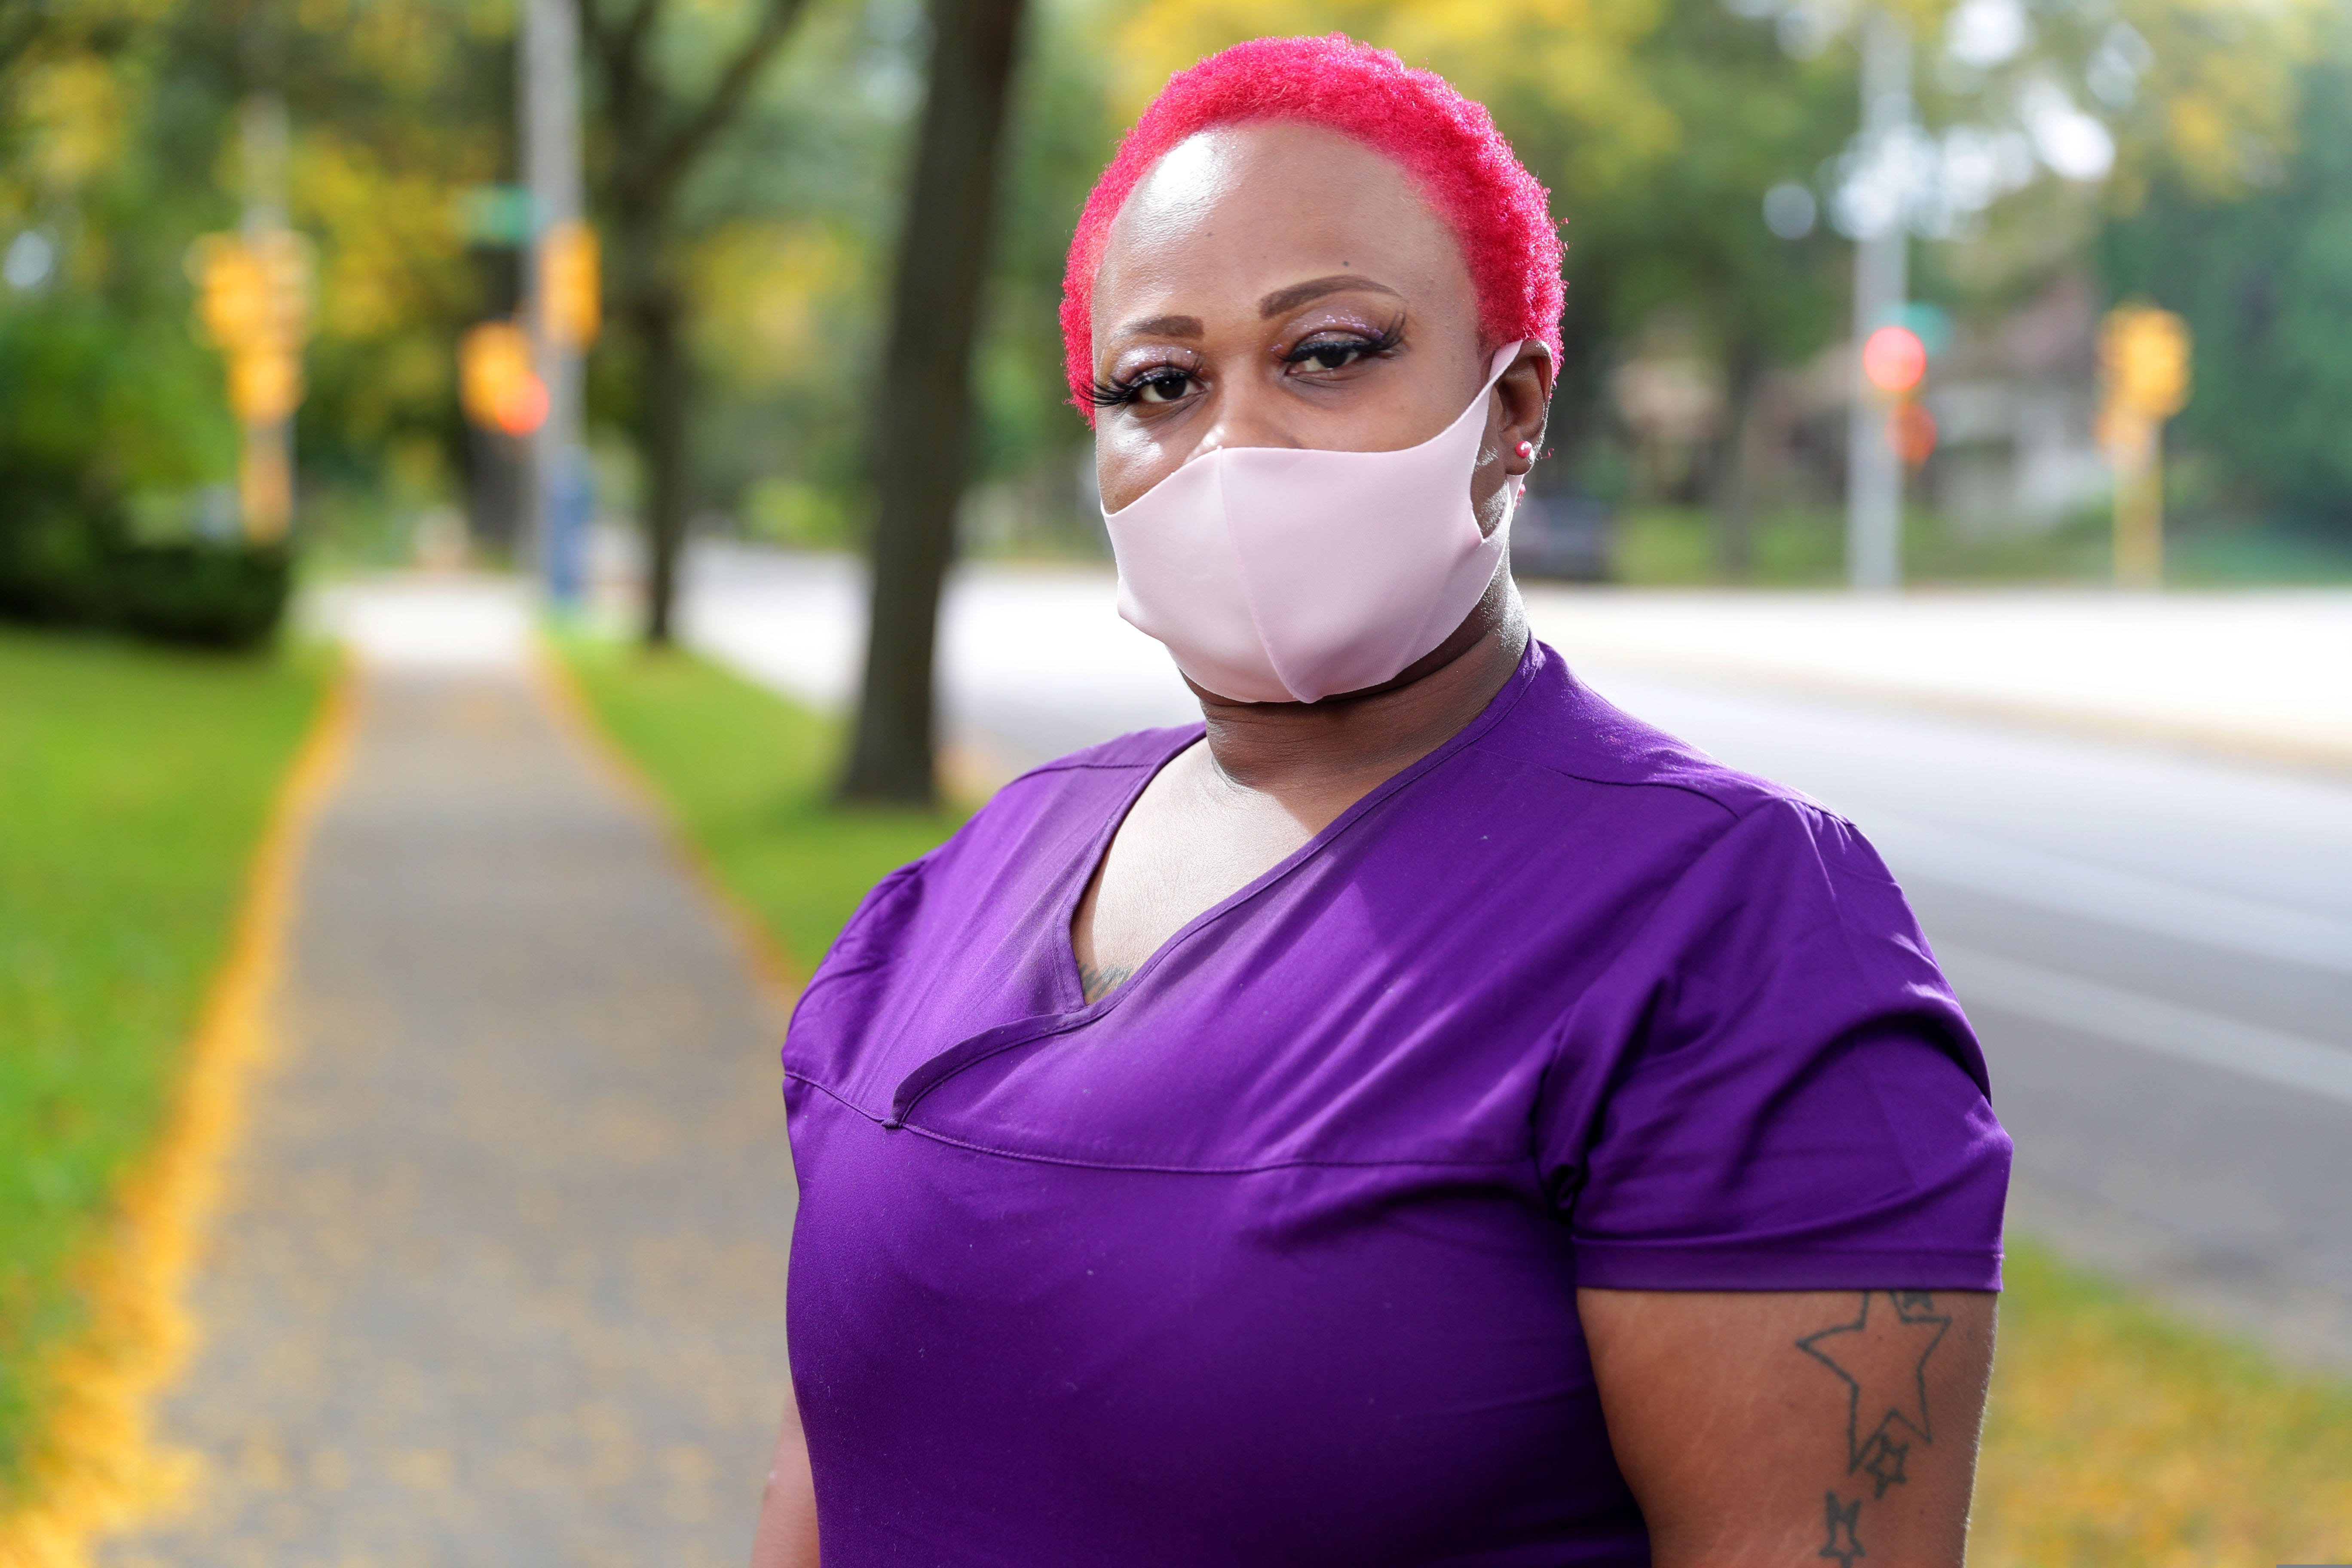 Charlene Bentley, a 37-year-old health care worker, works two jobs and has legal custody of her 7-year-old nephew. She is one of many women who are taking the brunt of the pandemic.